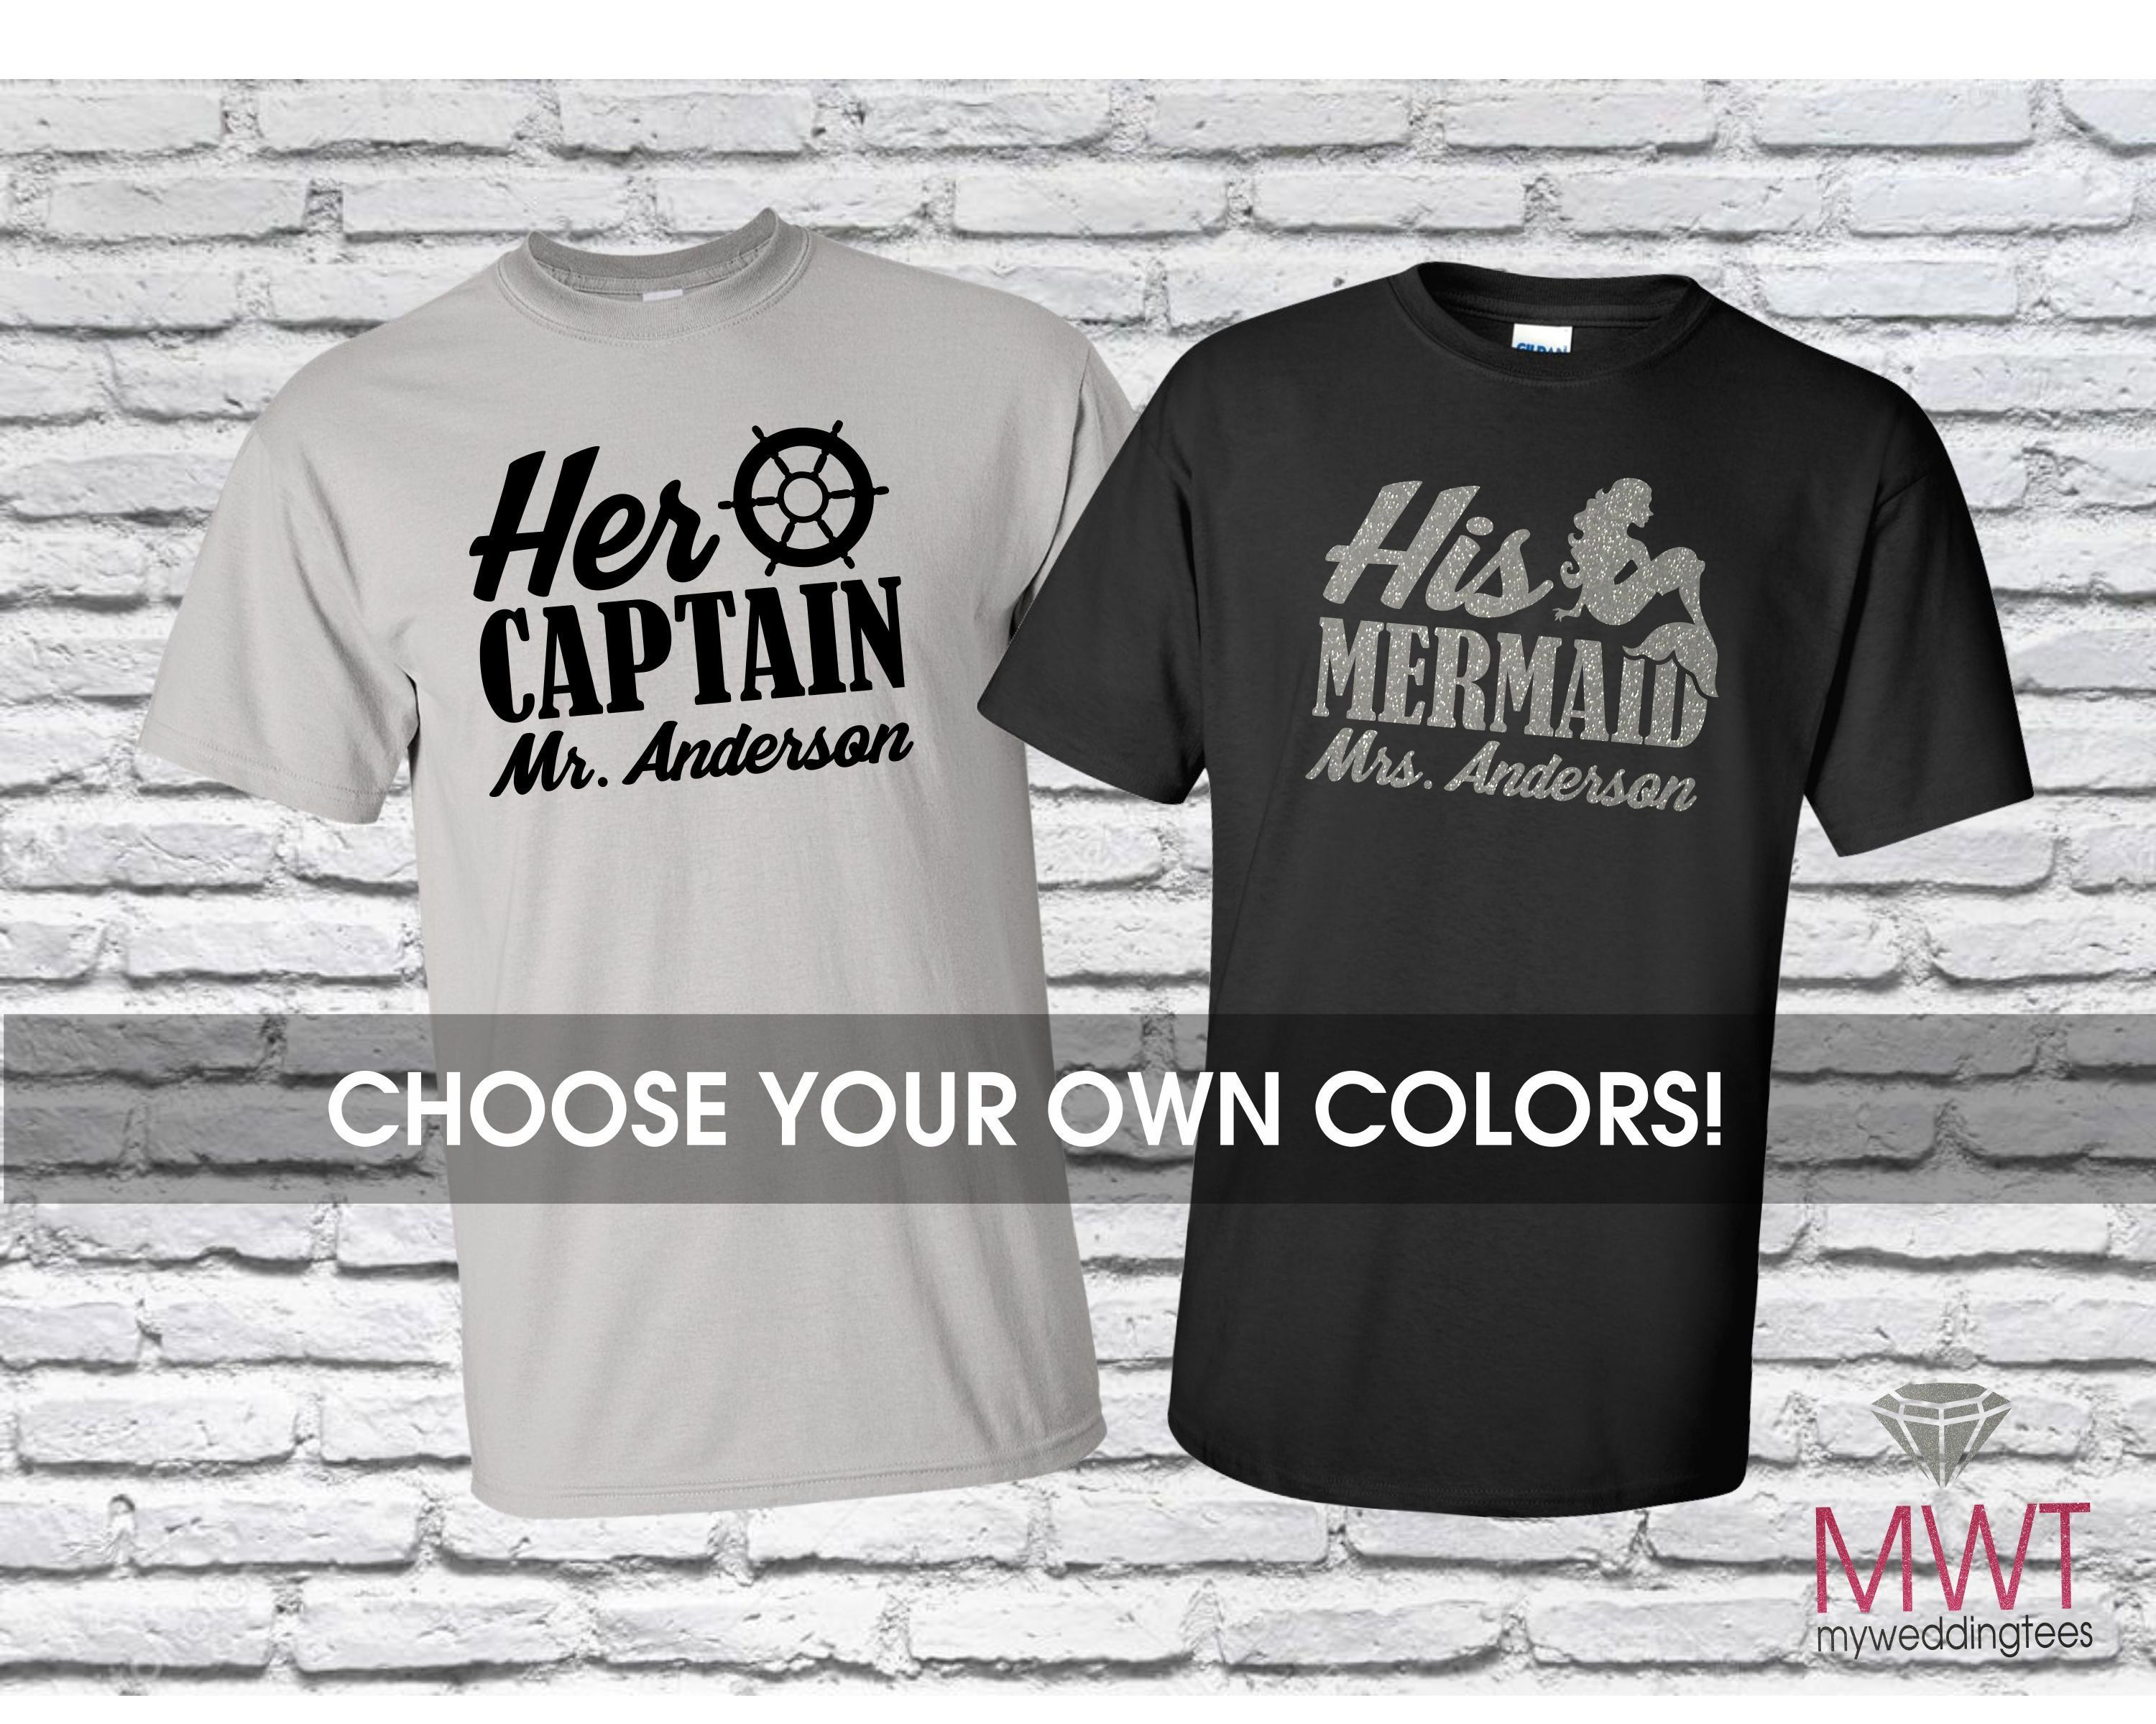 9ed1a00c Her Captain Shirt. His Mermaid Shirt. Couples Shirts. Vacation Shirts.  Honeymoon Shirts. Anniversary Shirts. Mr and Mrs Shirts. Couples Gift